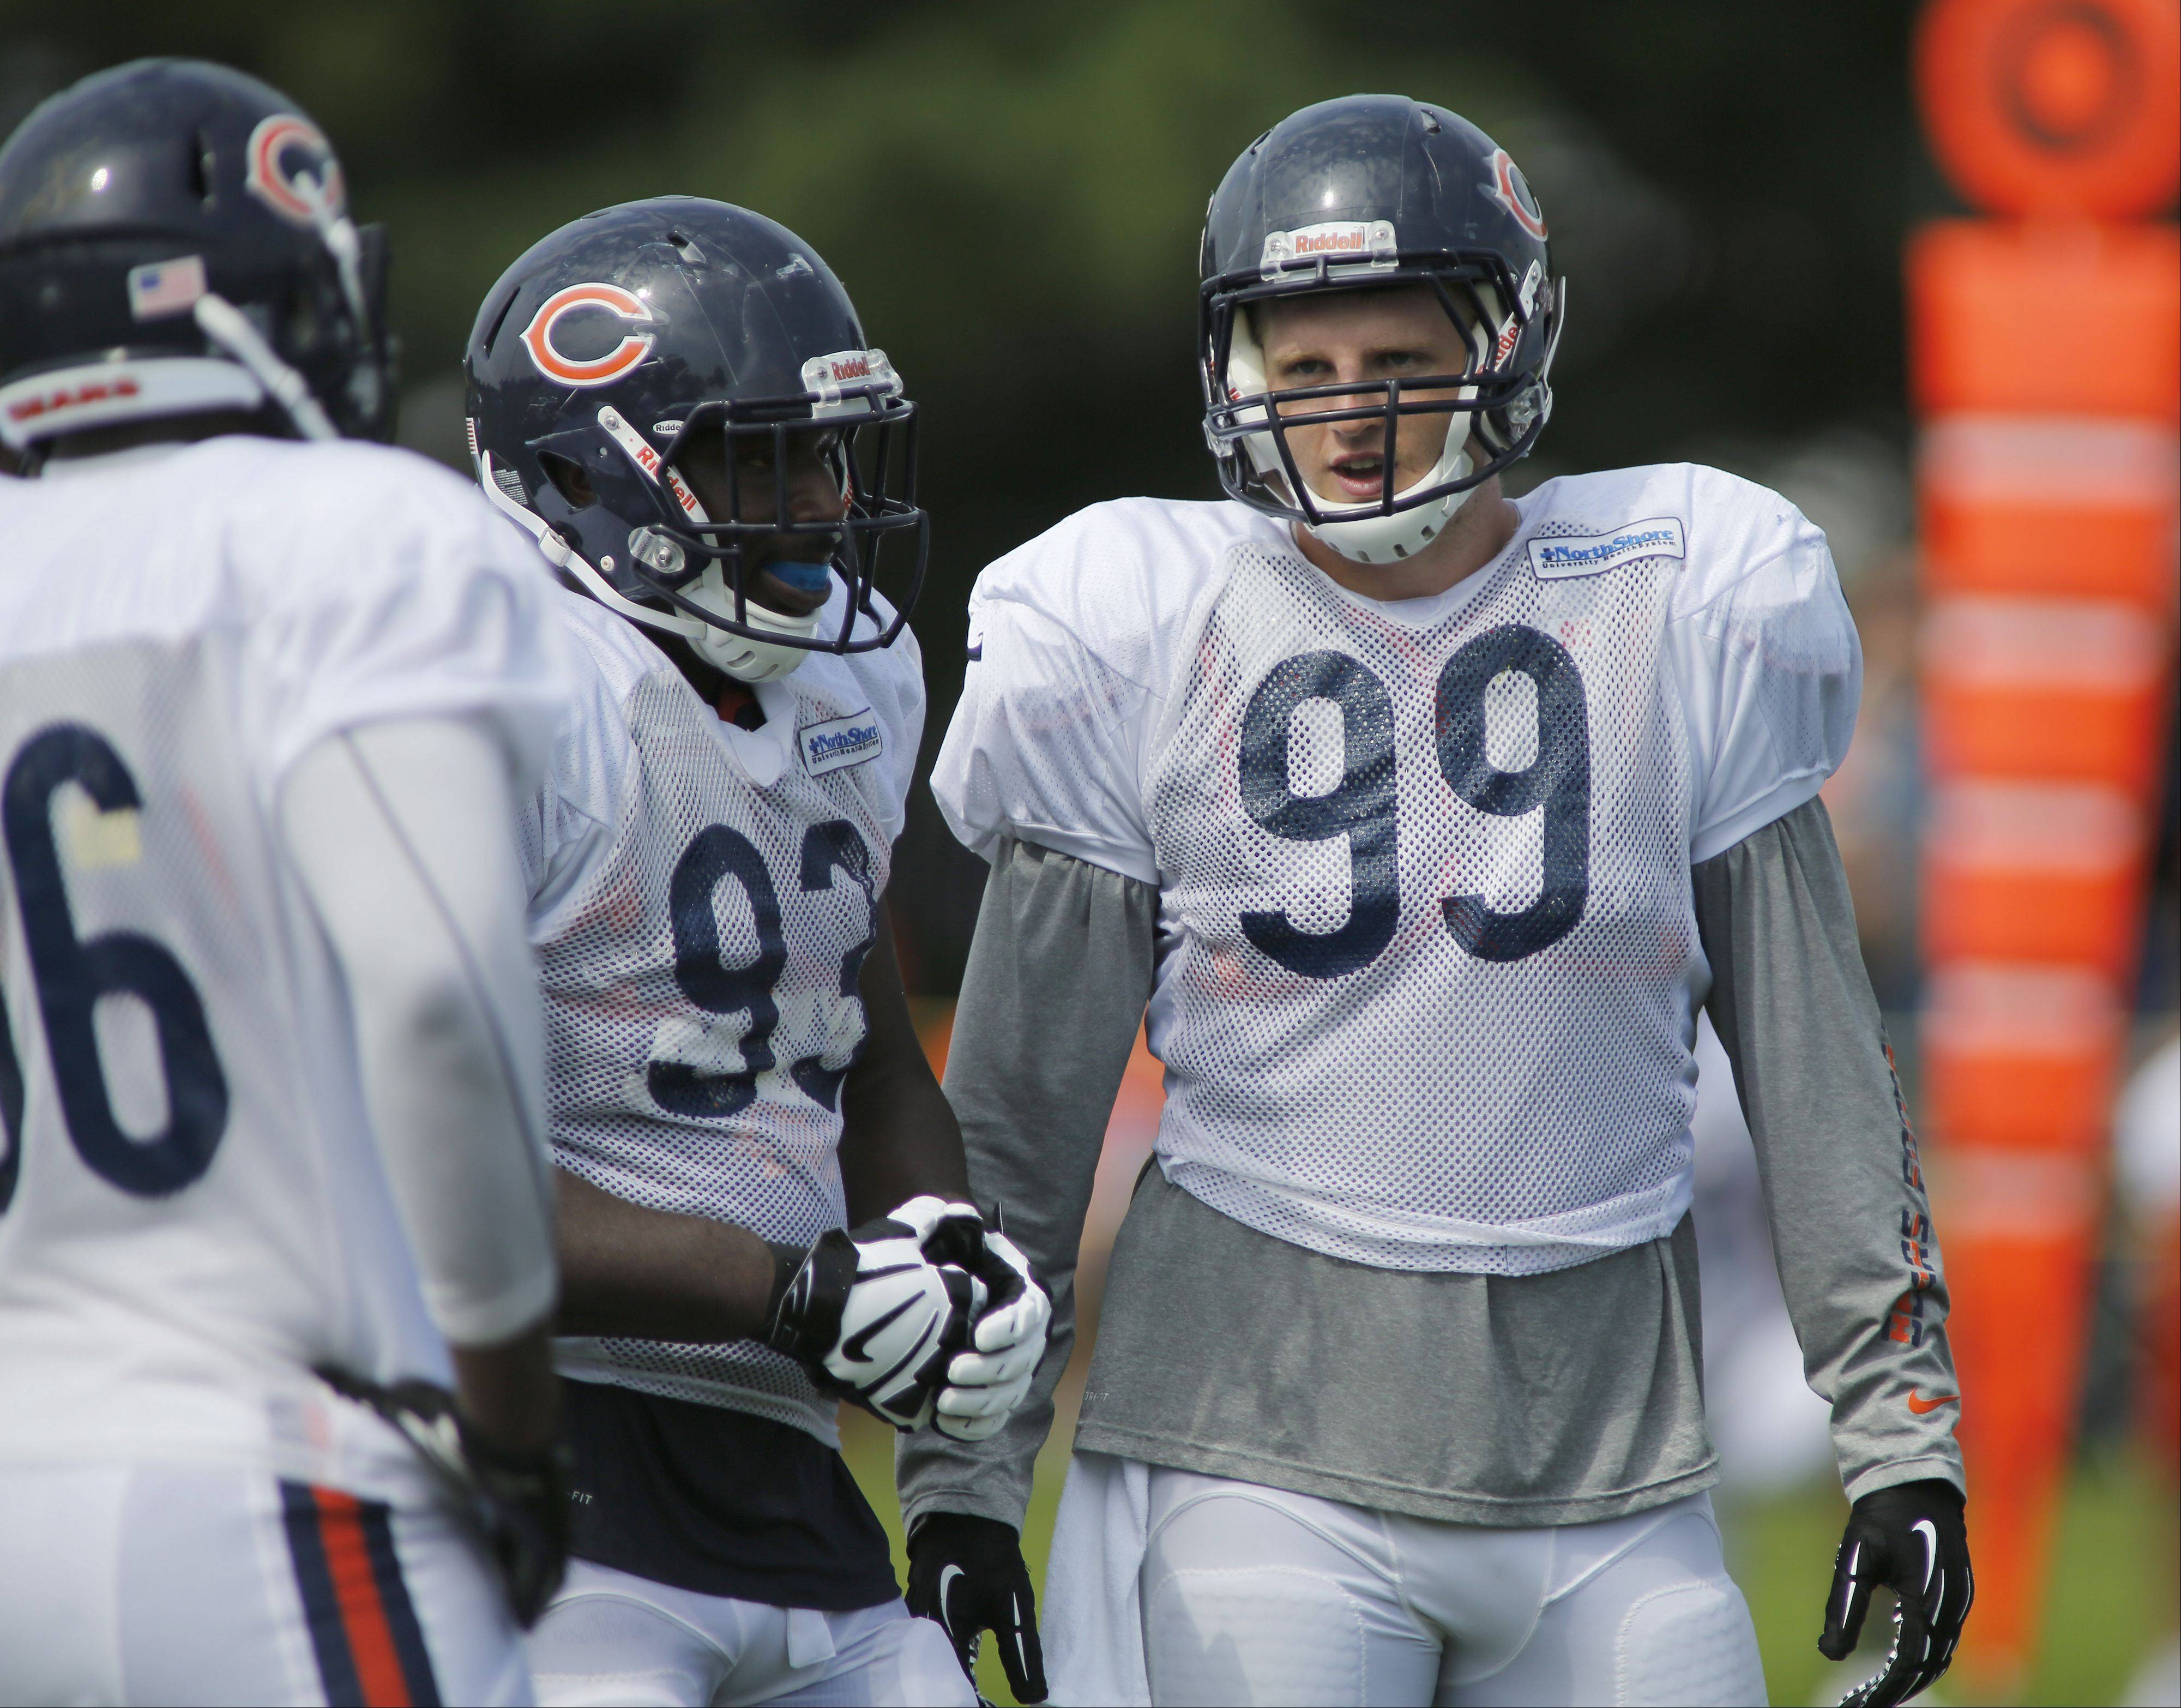 Bears defensive linemen Nate Collins (93) and Shea McClellin (99) are vying for playing time in Bears training camp at Olivet Nazarene University in Bourbonnais. Both should see plenty of action in Thursday�s second exhibition game.